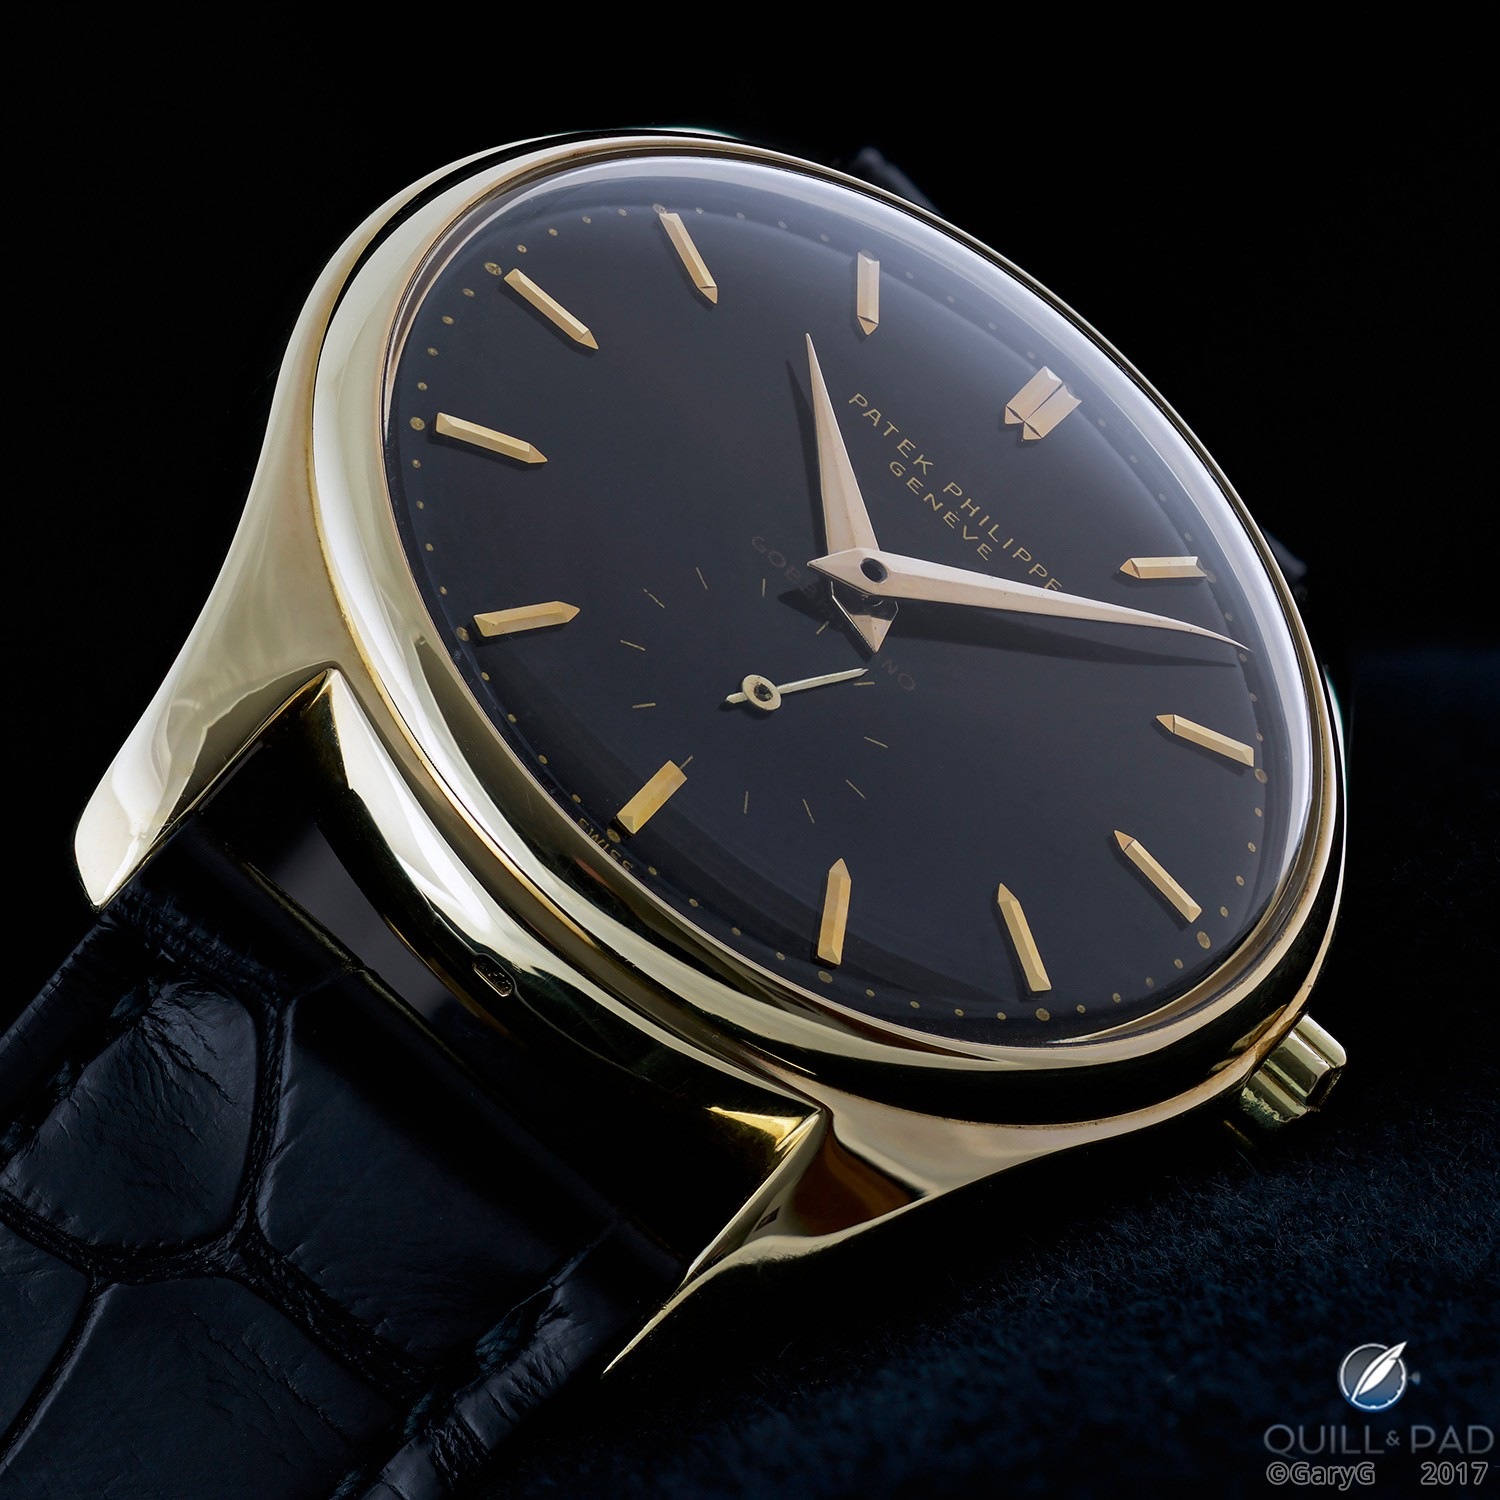 Striking colors: Patek Philippe Ref. 2526 in yellow gold with black enamel dial